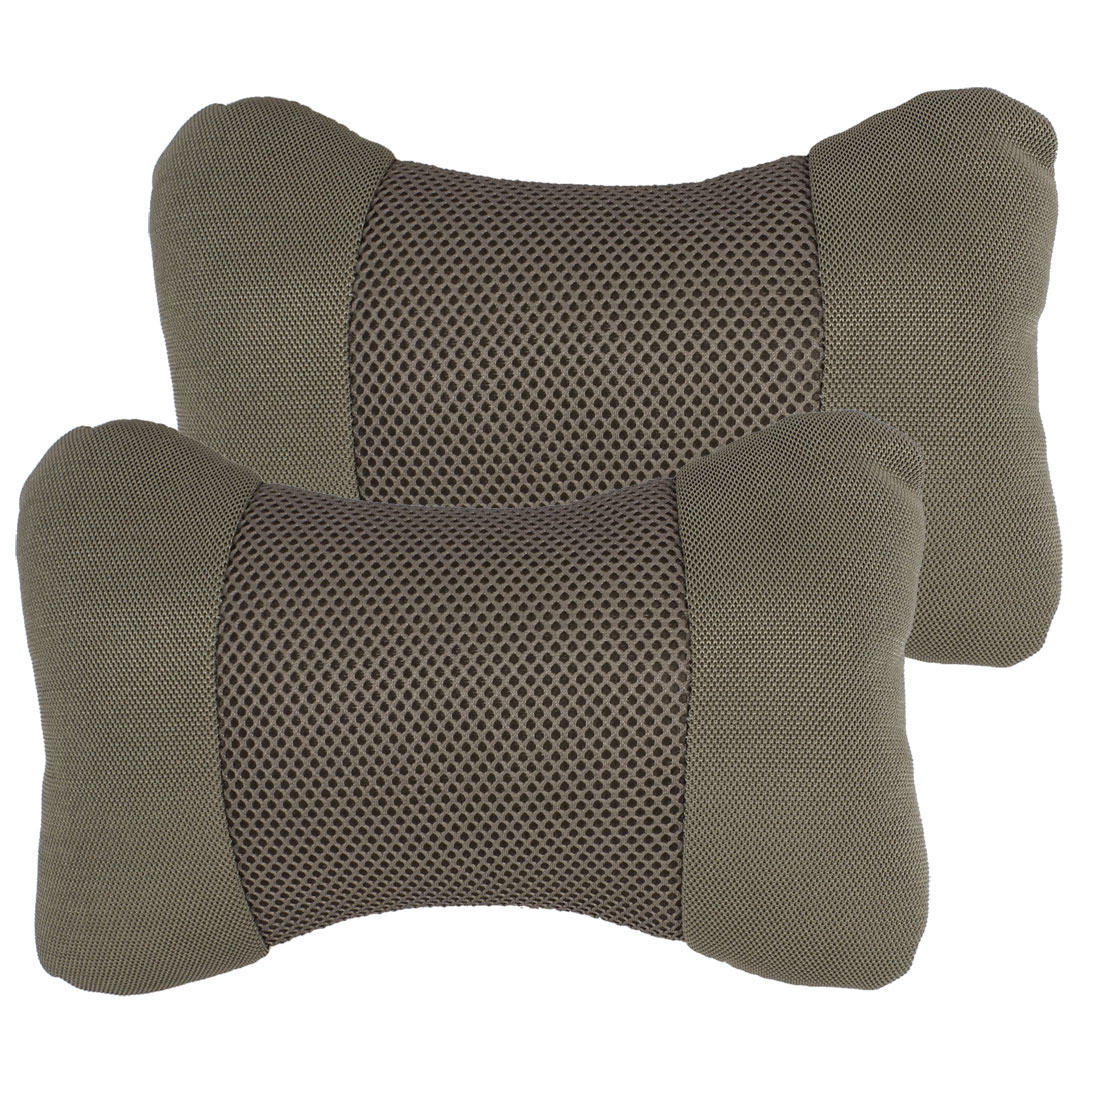 Pair Auto Car Bone Shape Stretchy Belt Sponge Padded Neck Pillow Pads Gray